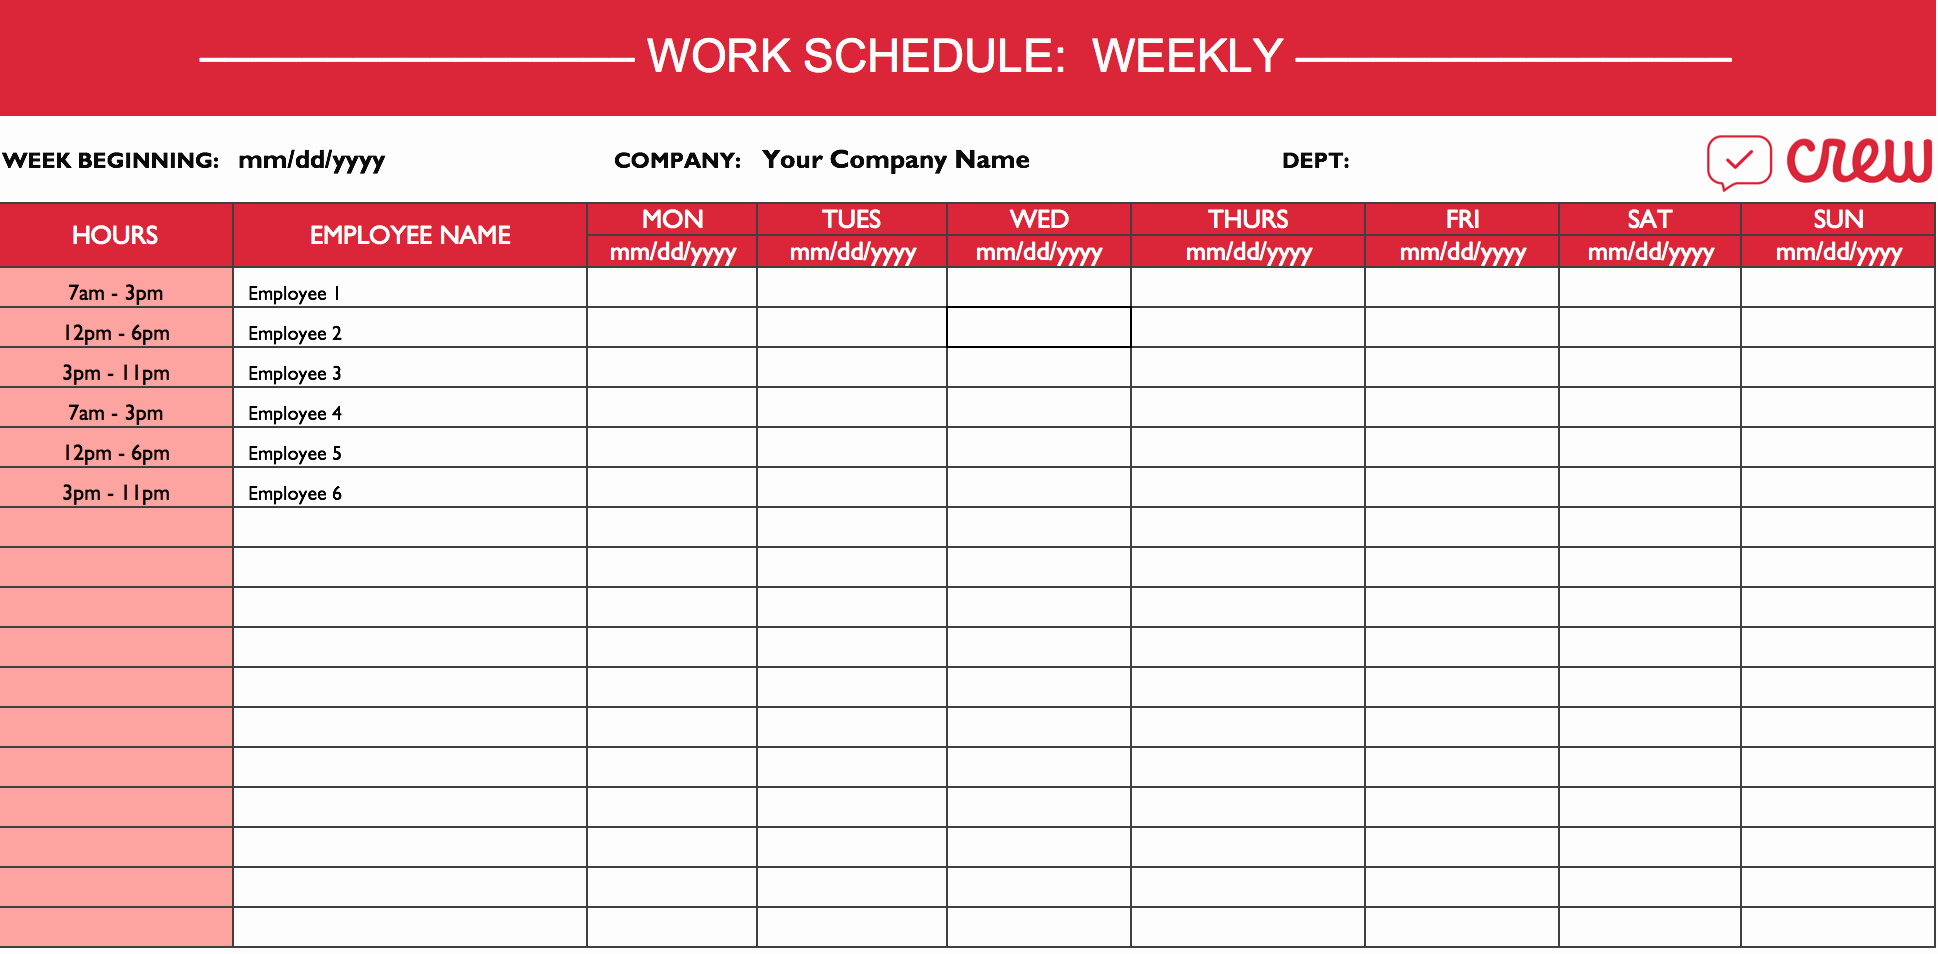 Weekly Work Schedule Template Free Awesome Weekly Work Schedule Template I Crew